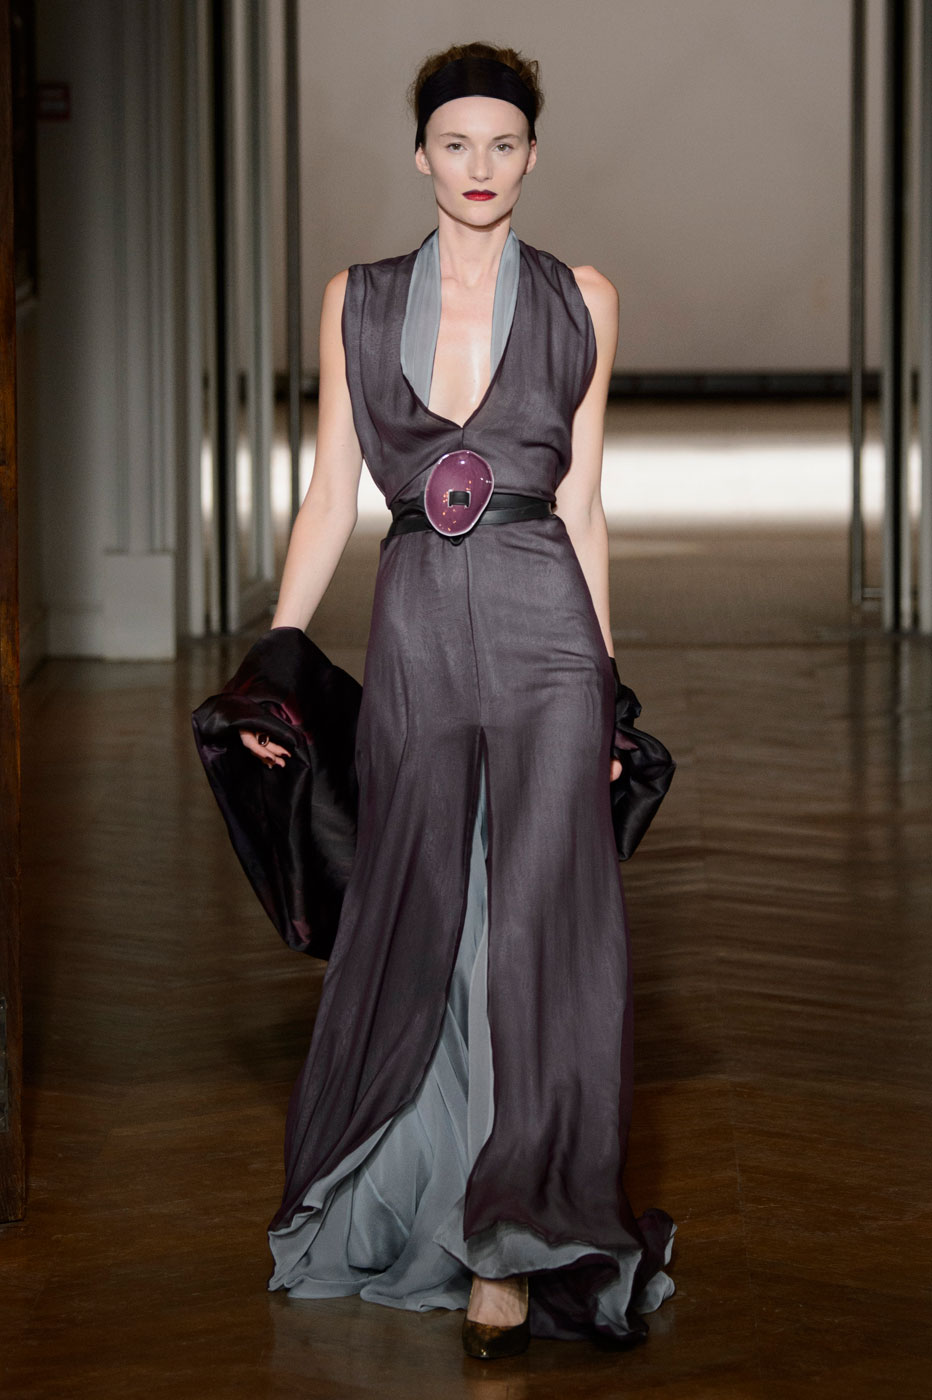 Gustavolins-Prive-fashion-runway-show-haute-couture-paris-spring-2015-the-impression-66